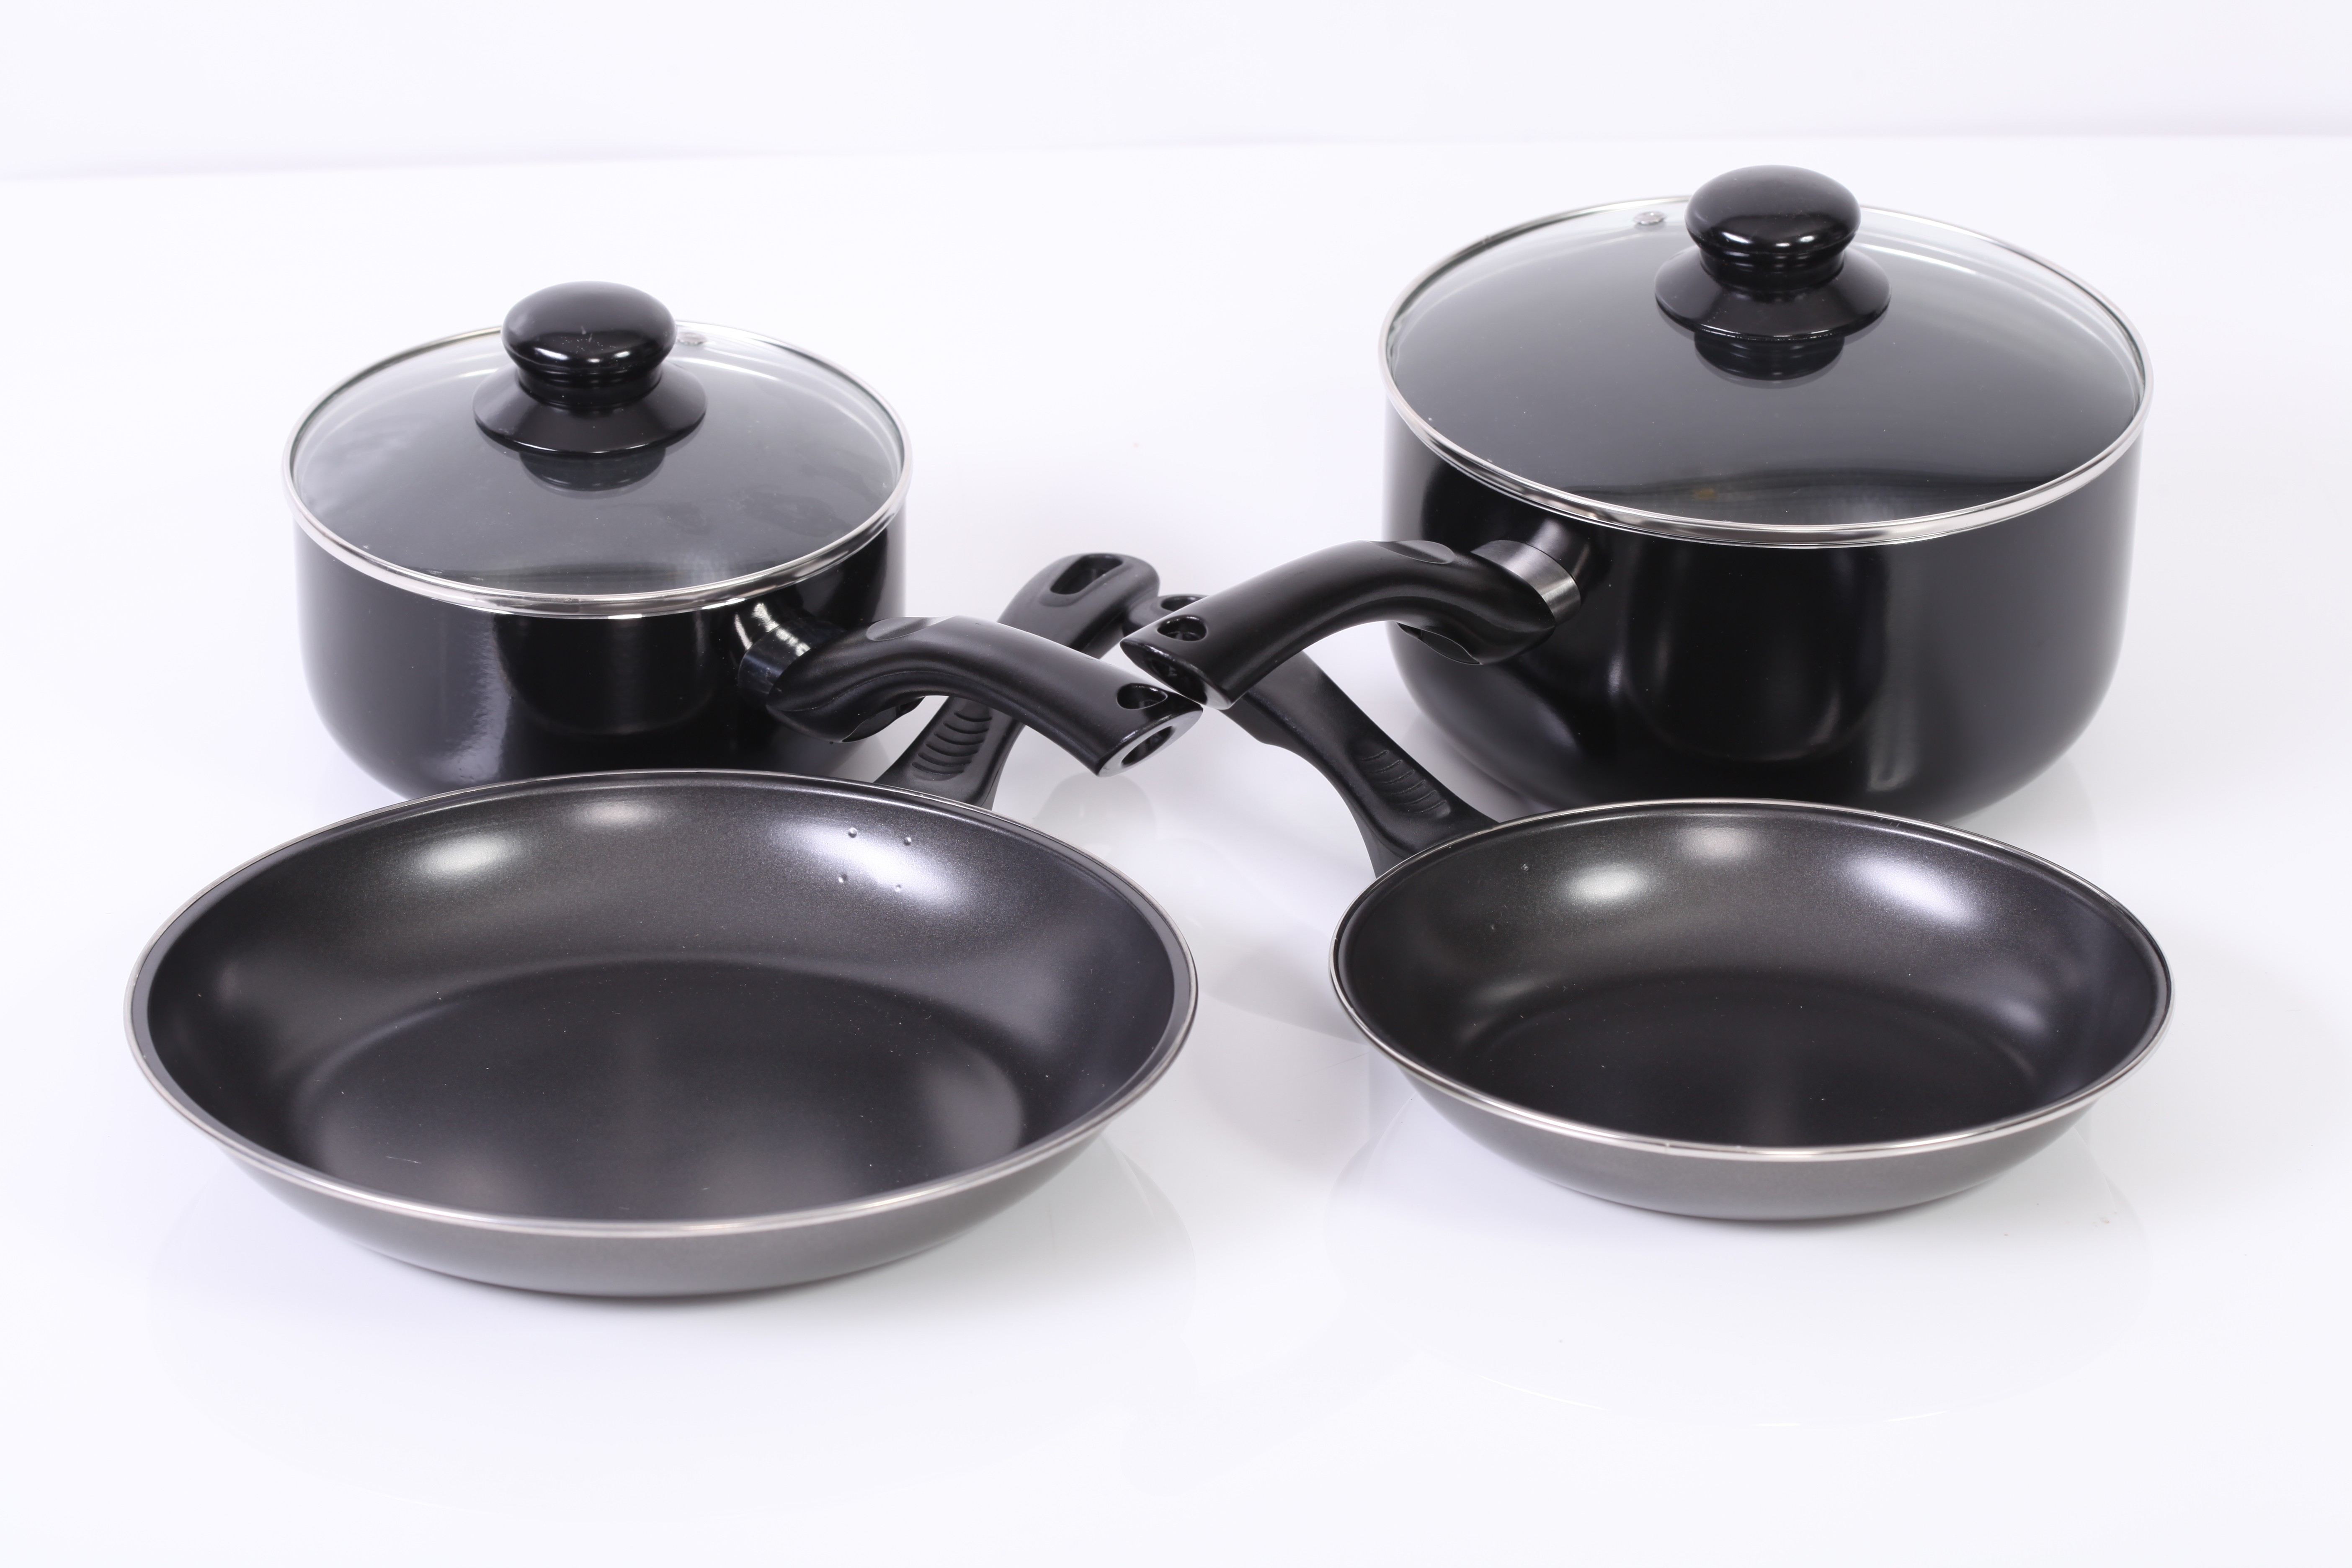 Pots, Pans and Saucepans included